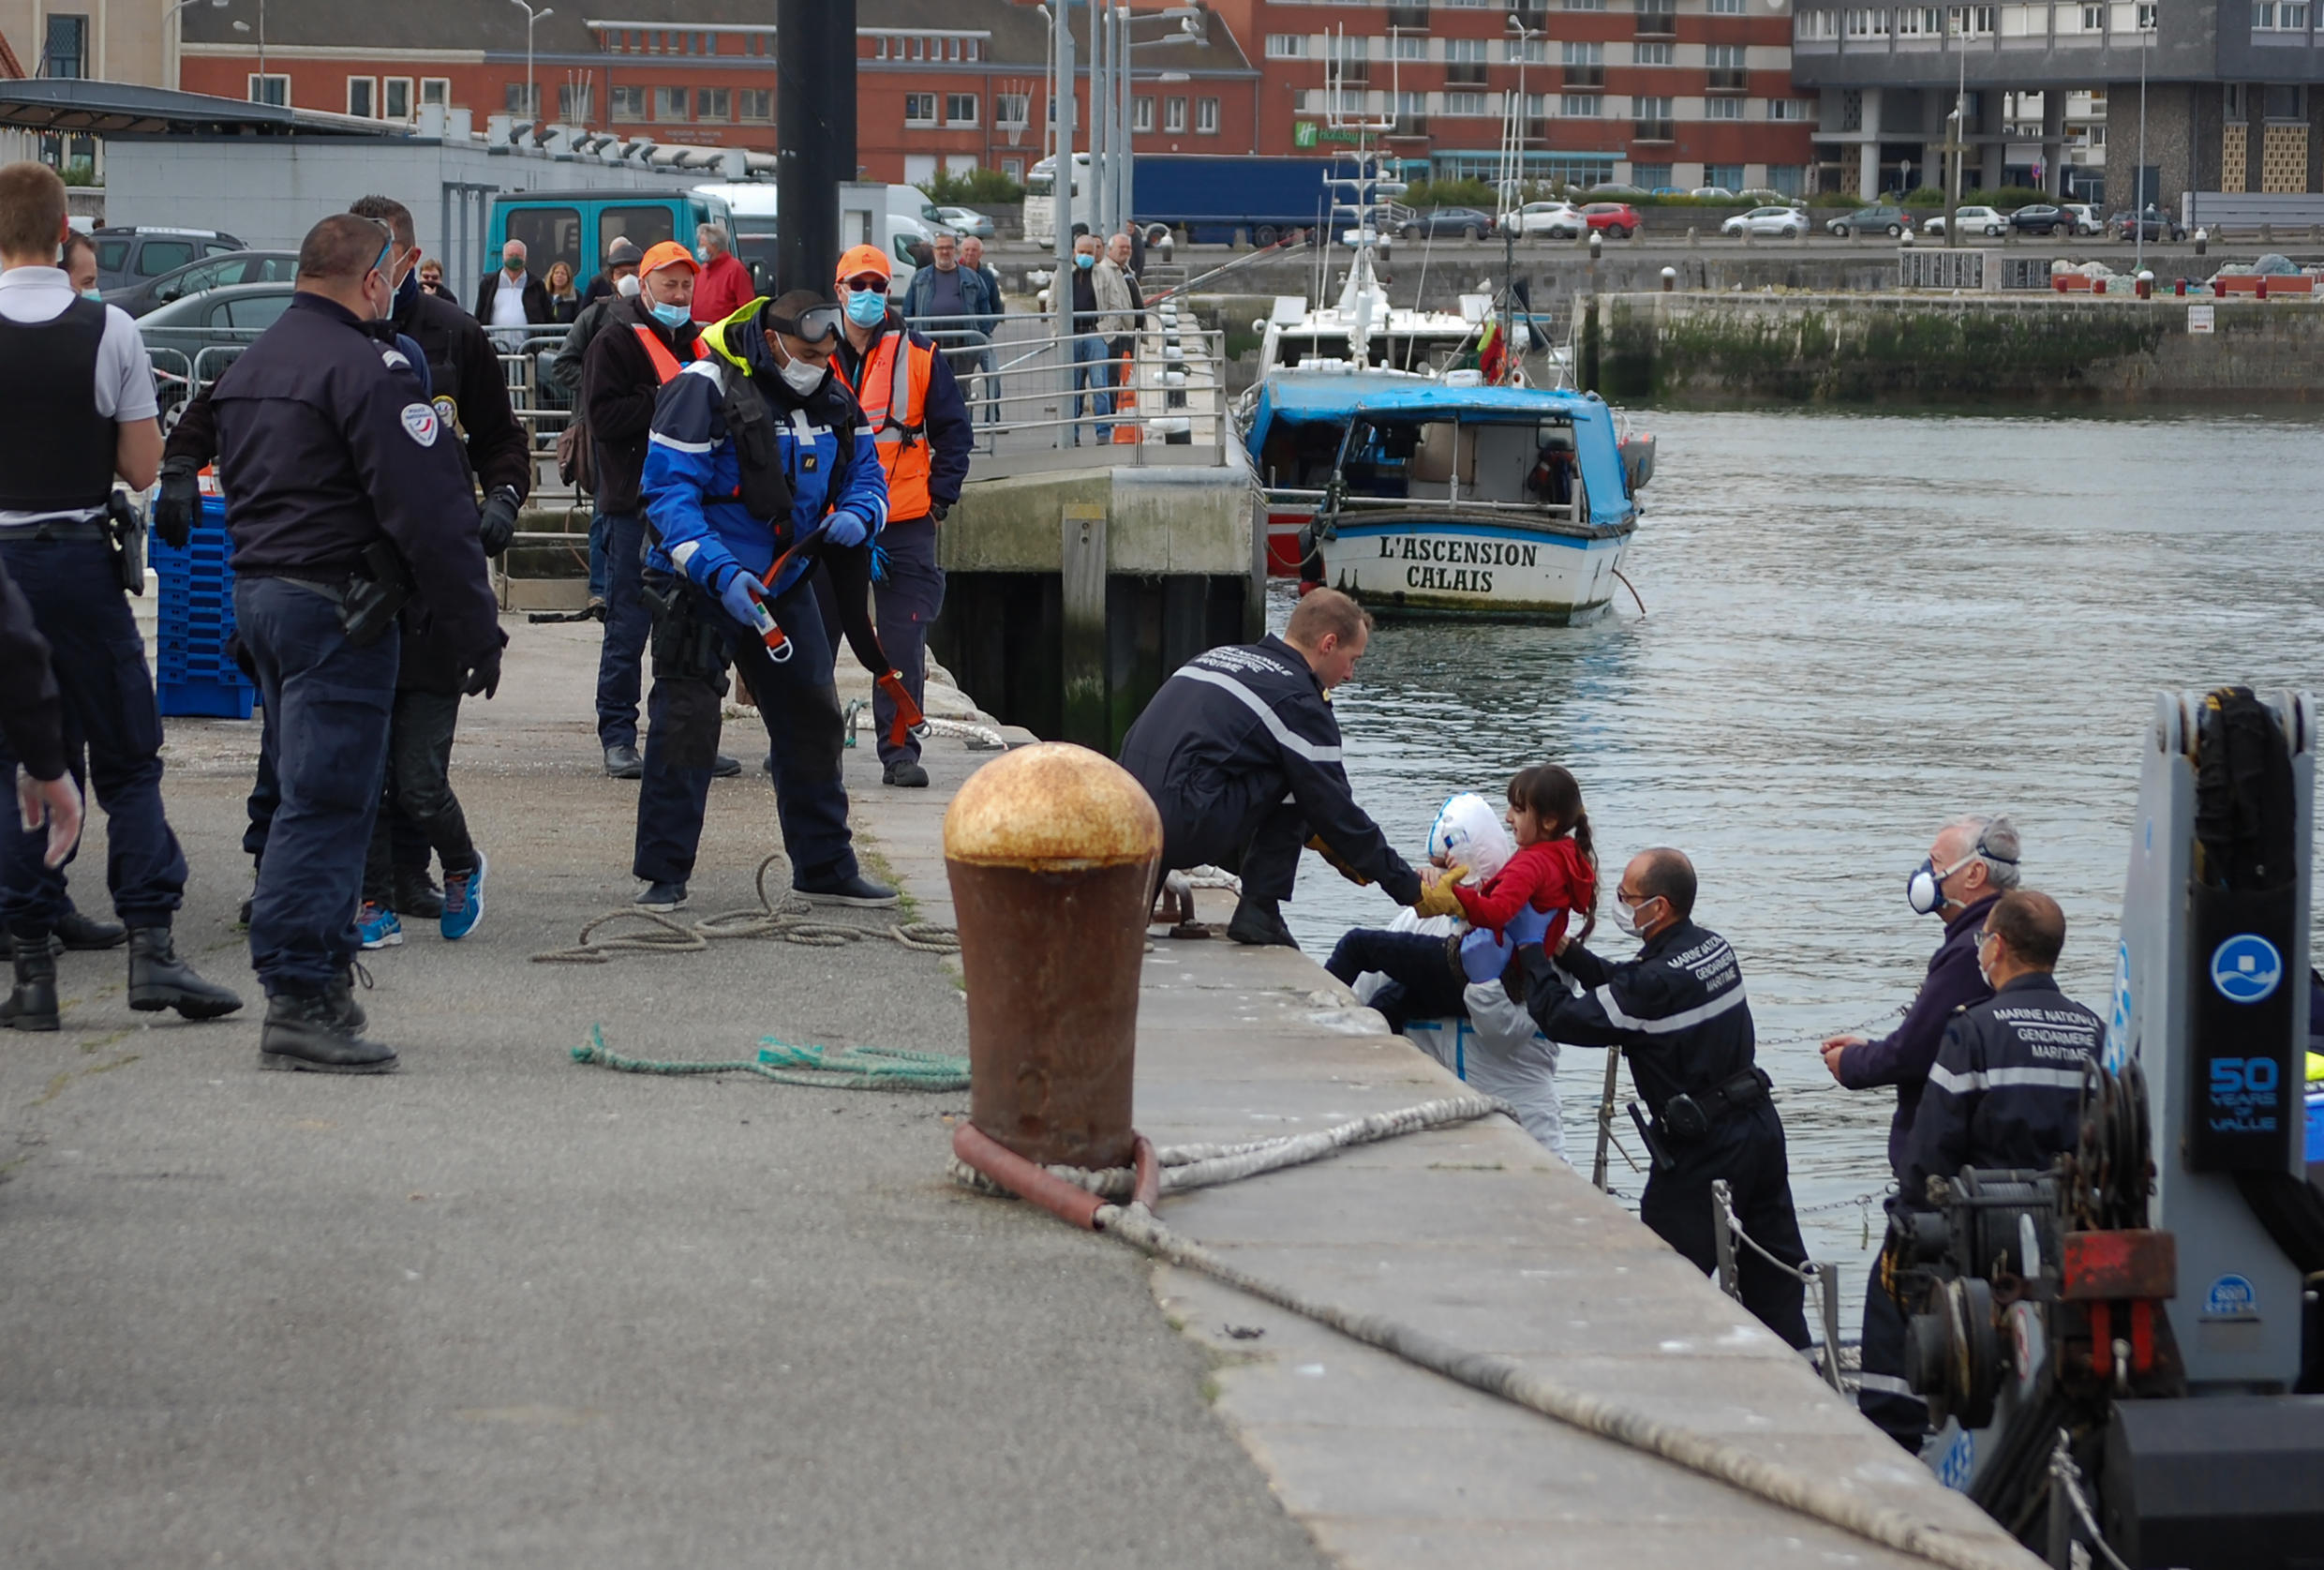 French gendarmes help migrants who failed to cross the English Channel to the UK in May 2020.